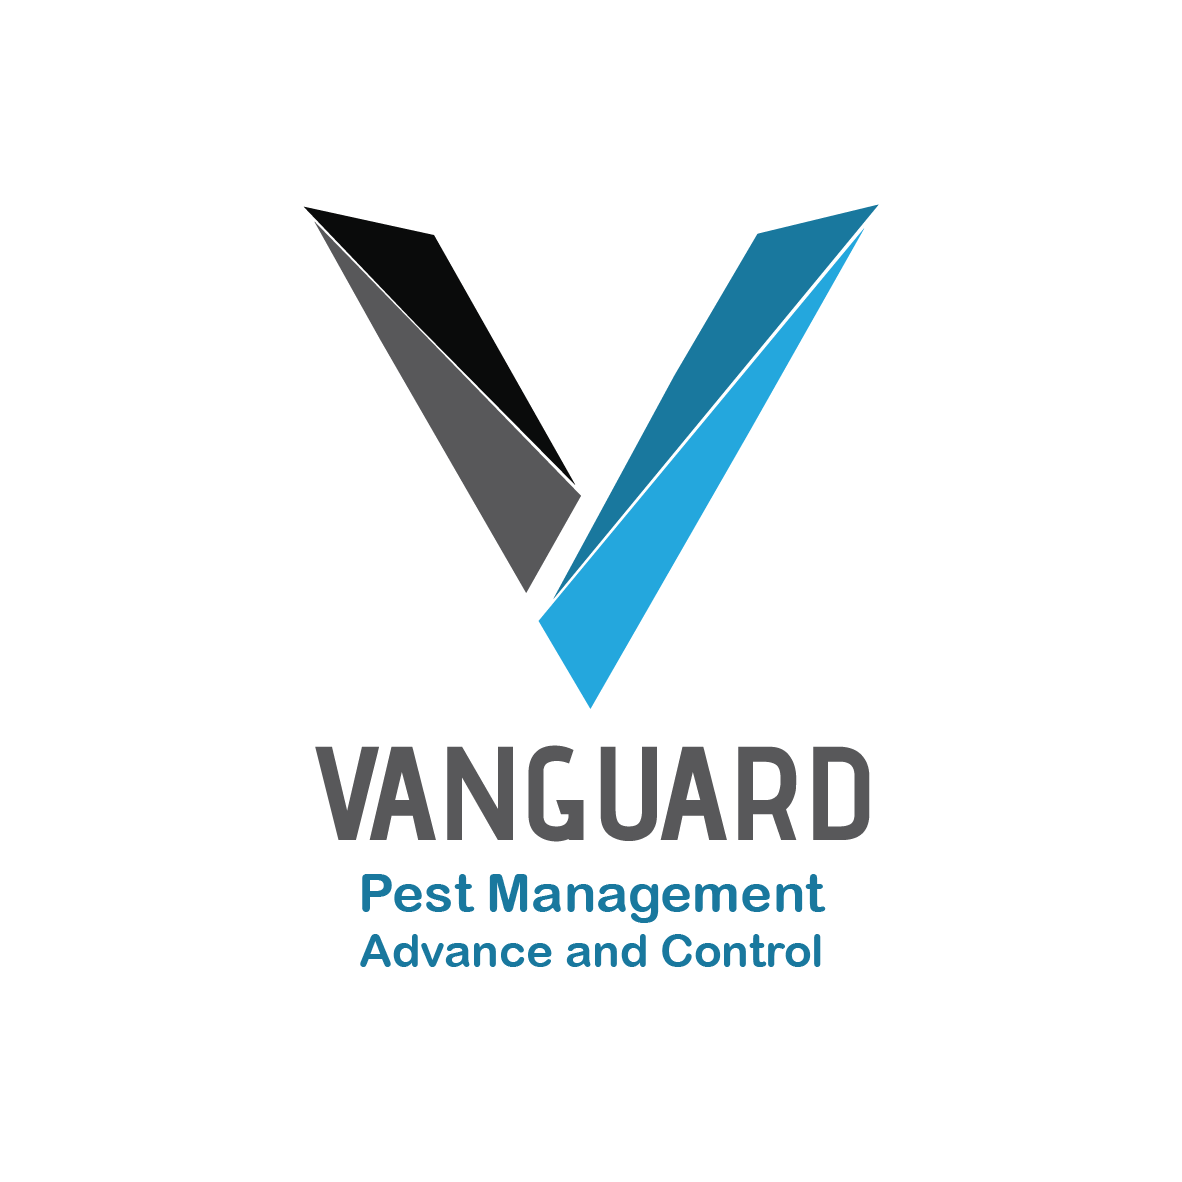 Pest Control Fast by Vanguard Pest Management Pte Ltd | Singapore